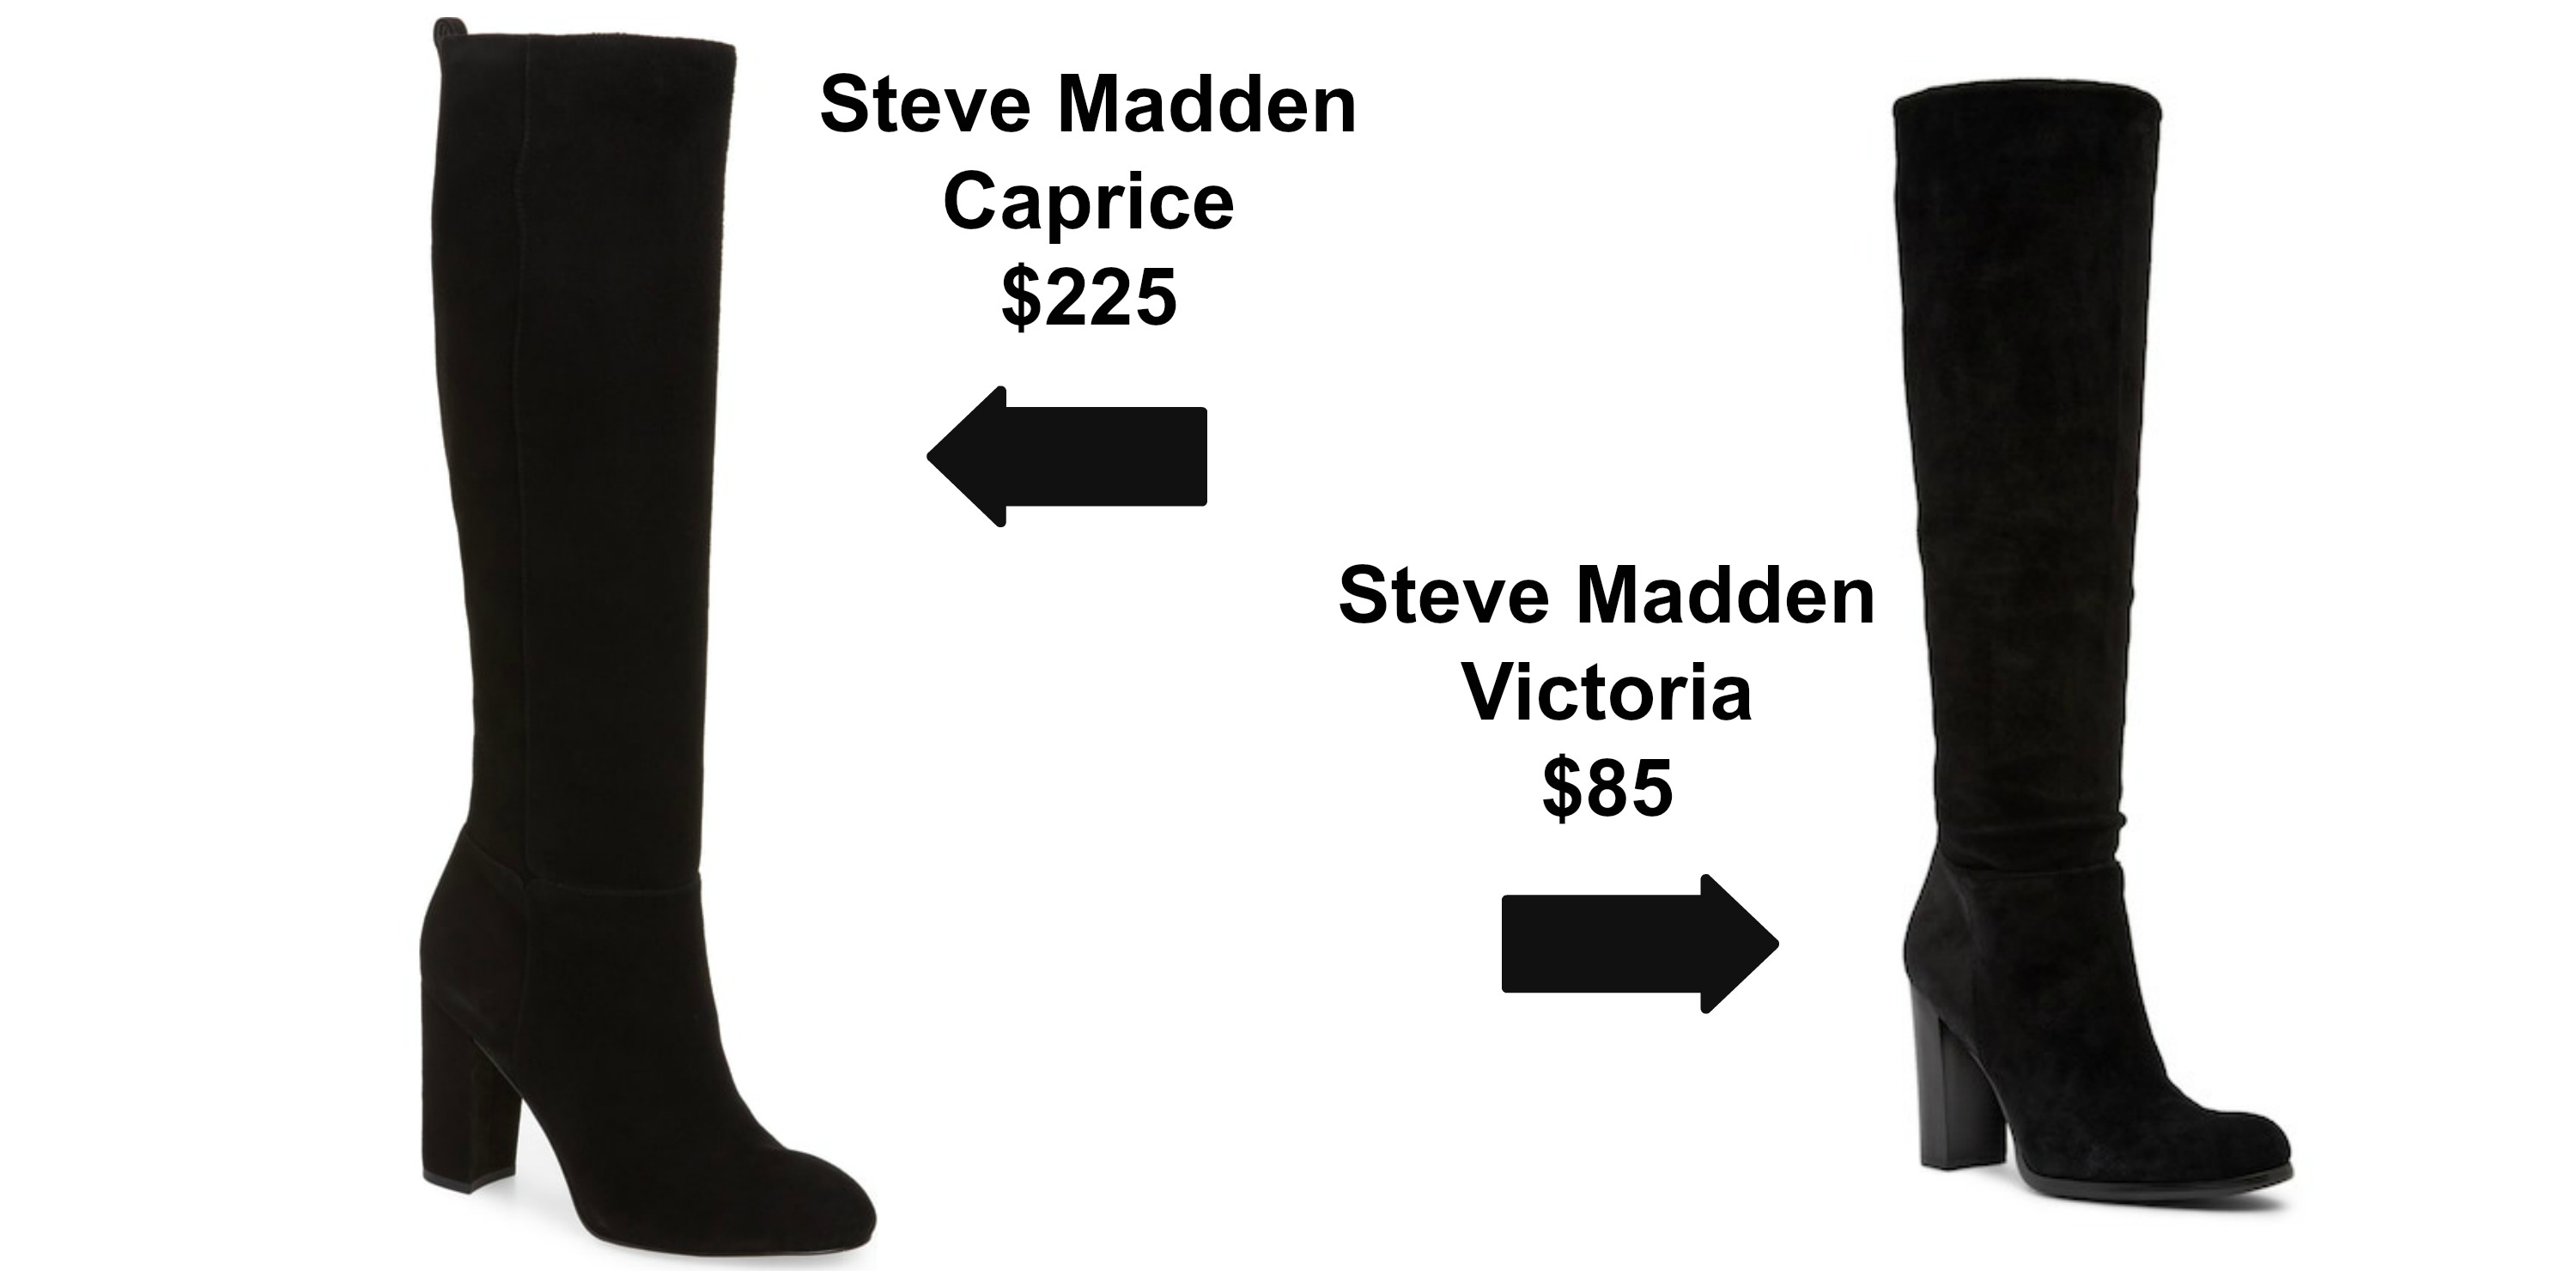 48cab39f6 Steve Madden Caprice Knee-High Boot  Comes in 3 colors  225